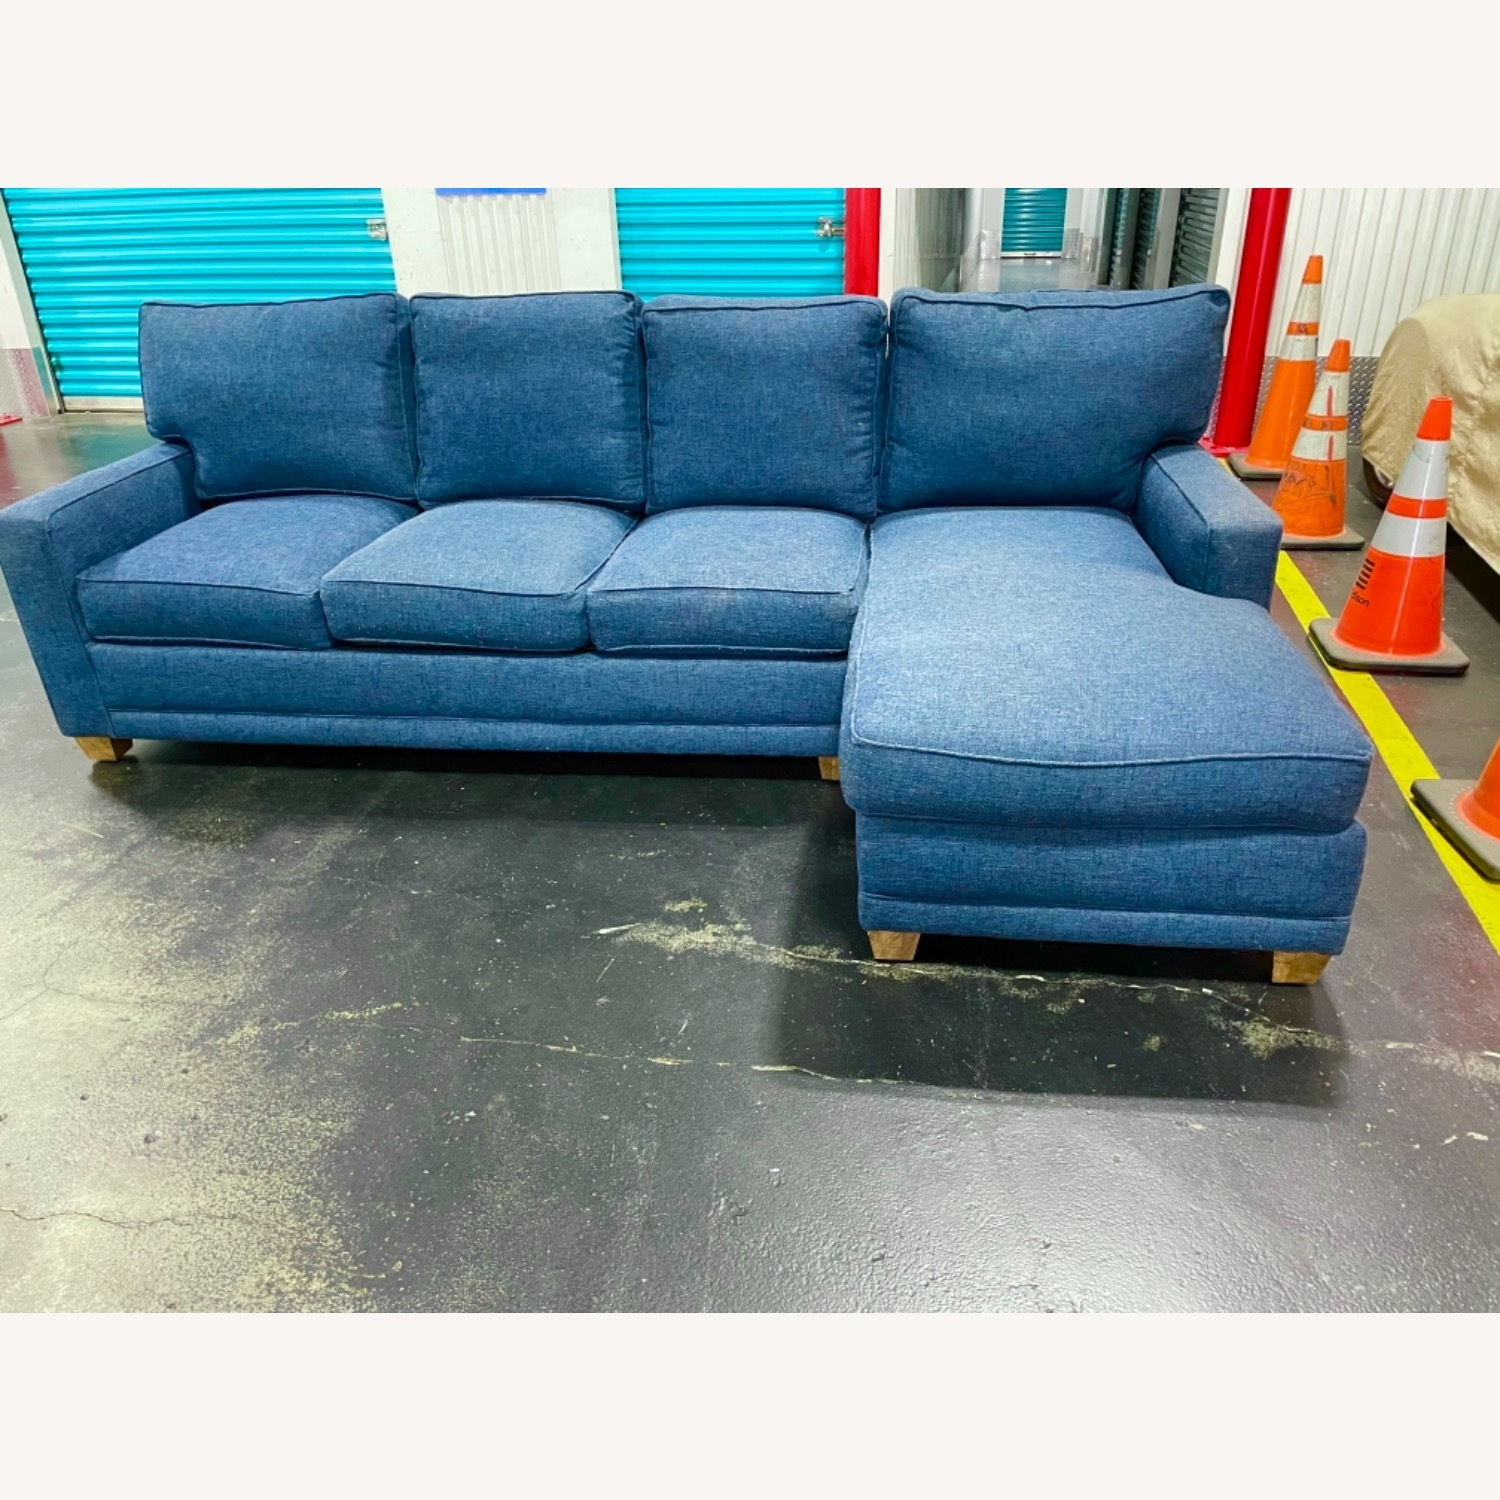 Rowe My Style 2 Piece Sectional - image-5